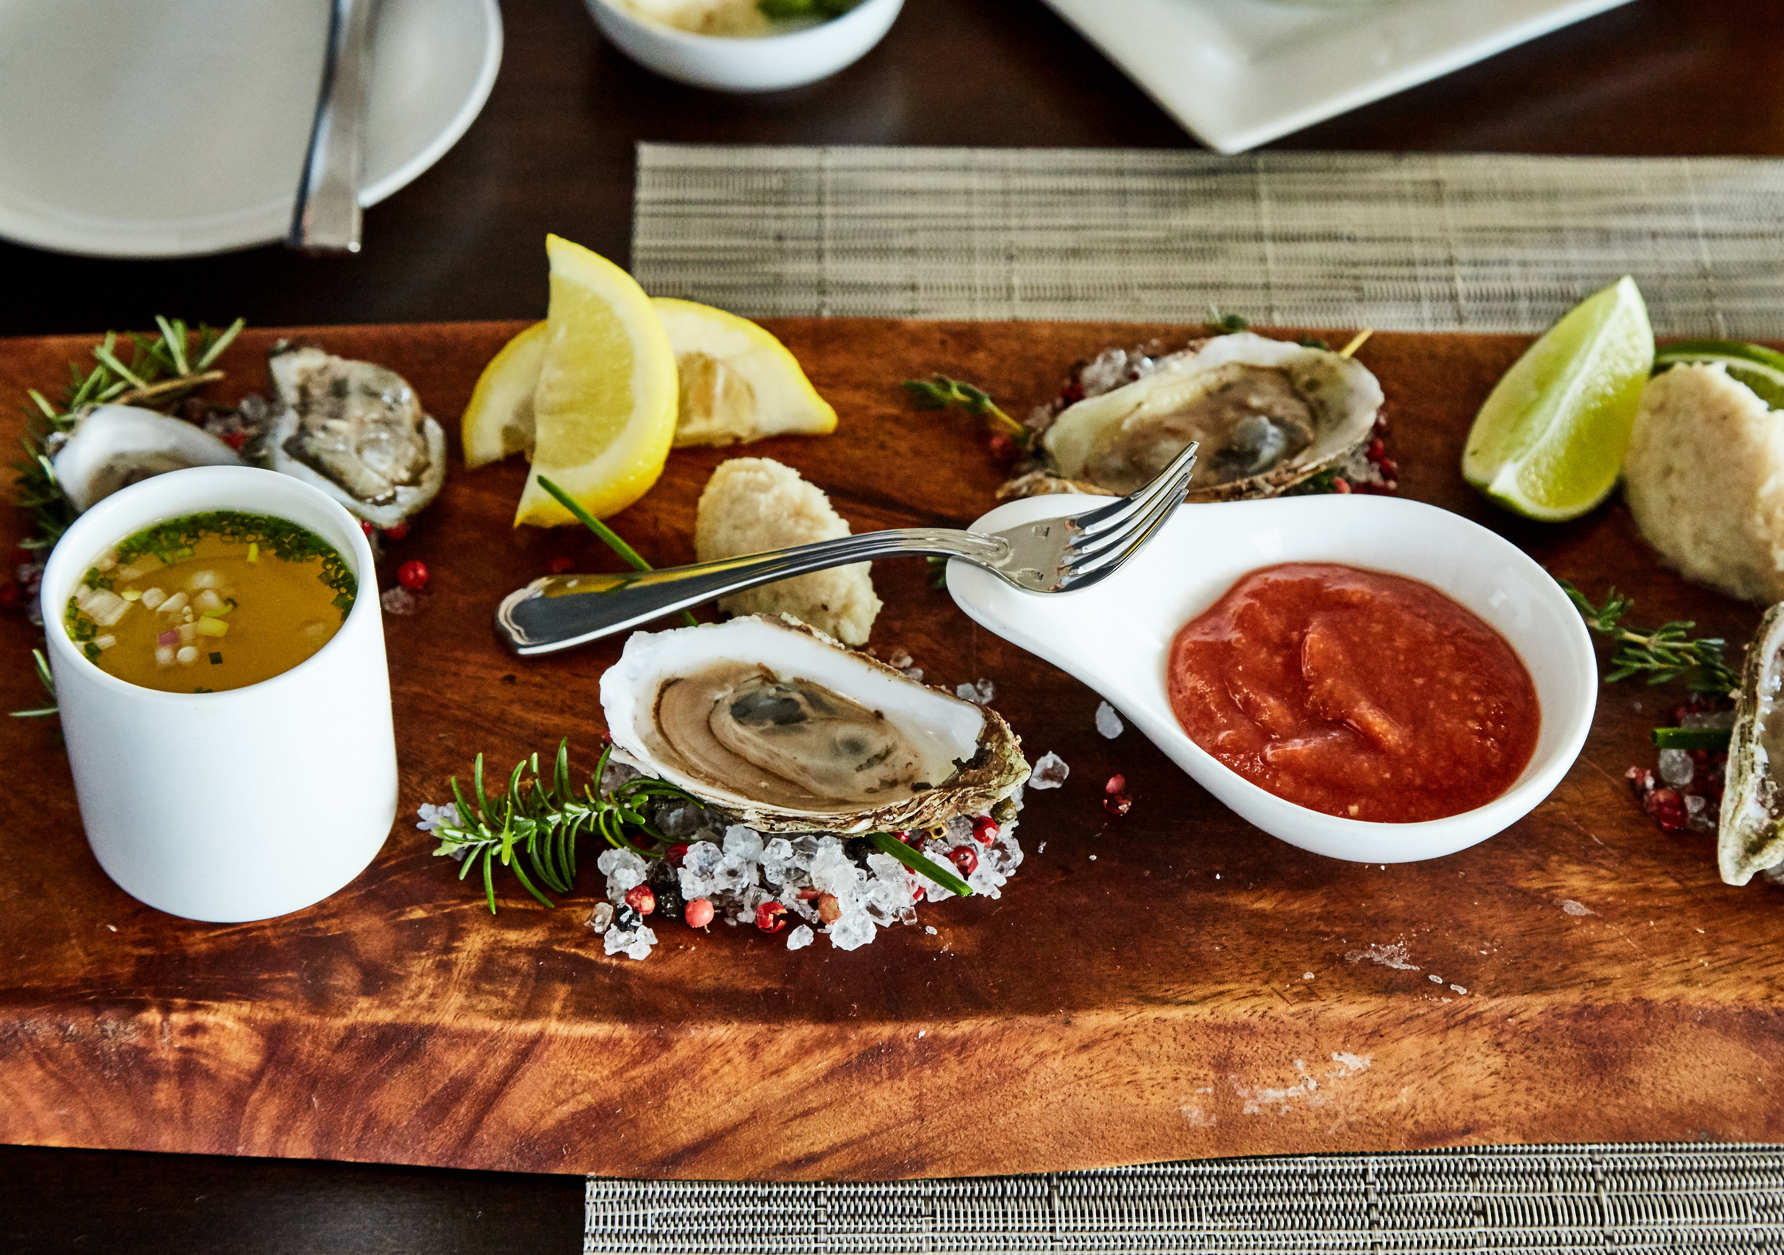 Oysters at Coastal Provisions (Courtesy Wild Dunes Resort)